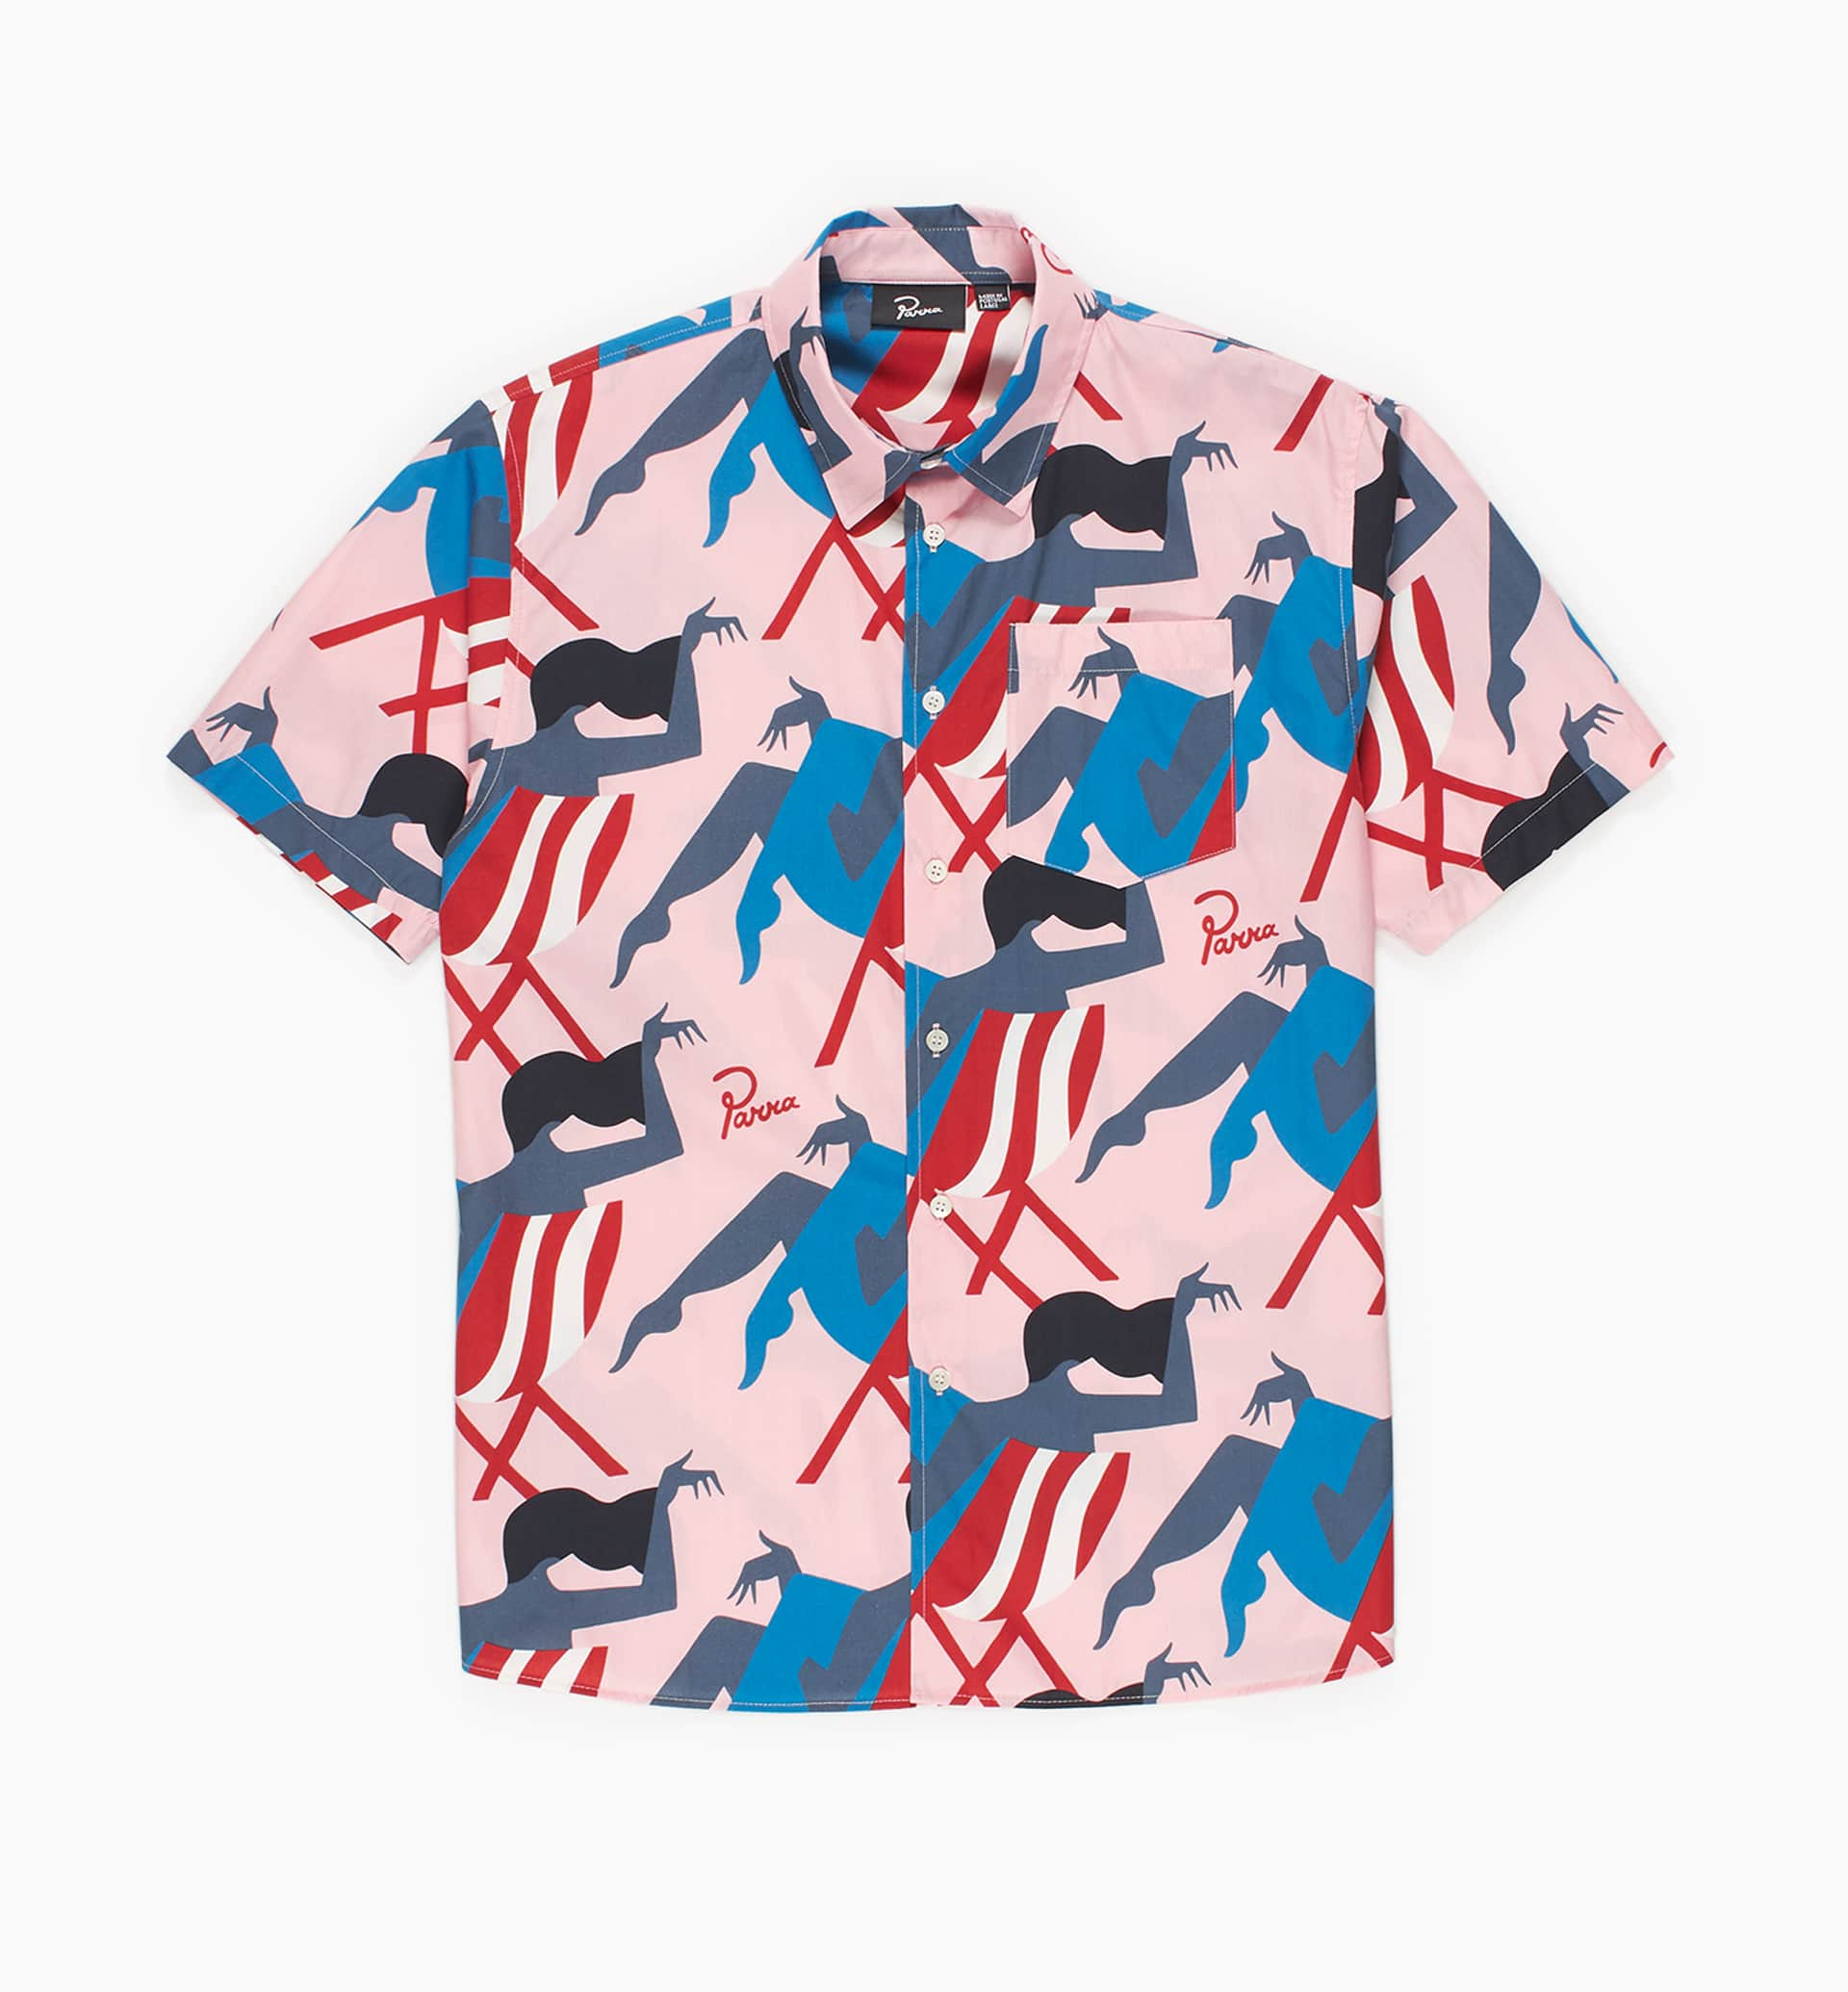 Parra - madame beach shirt